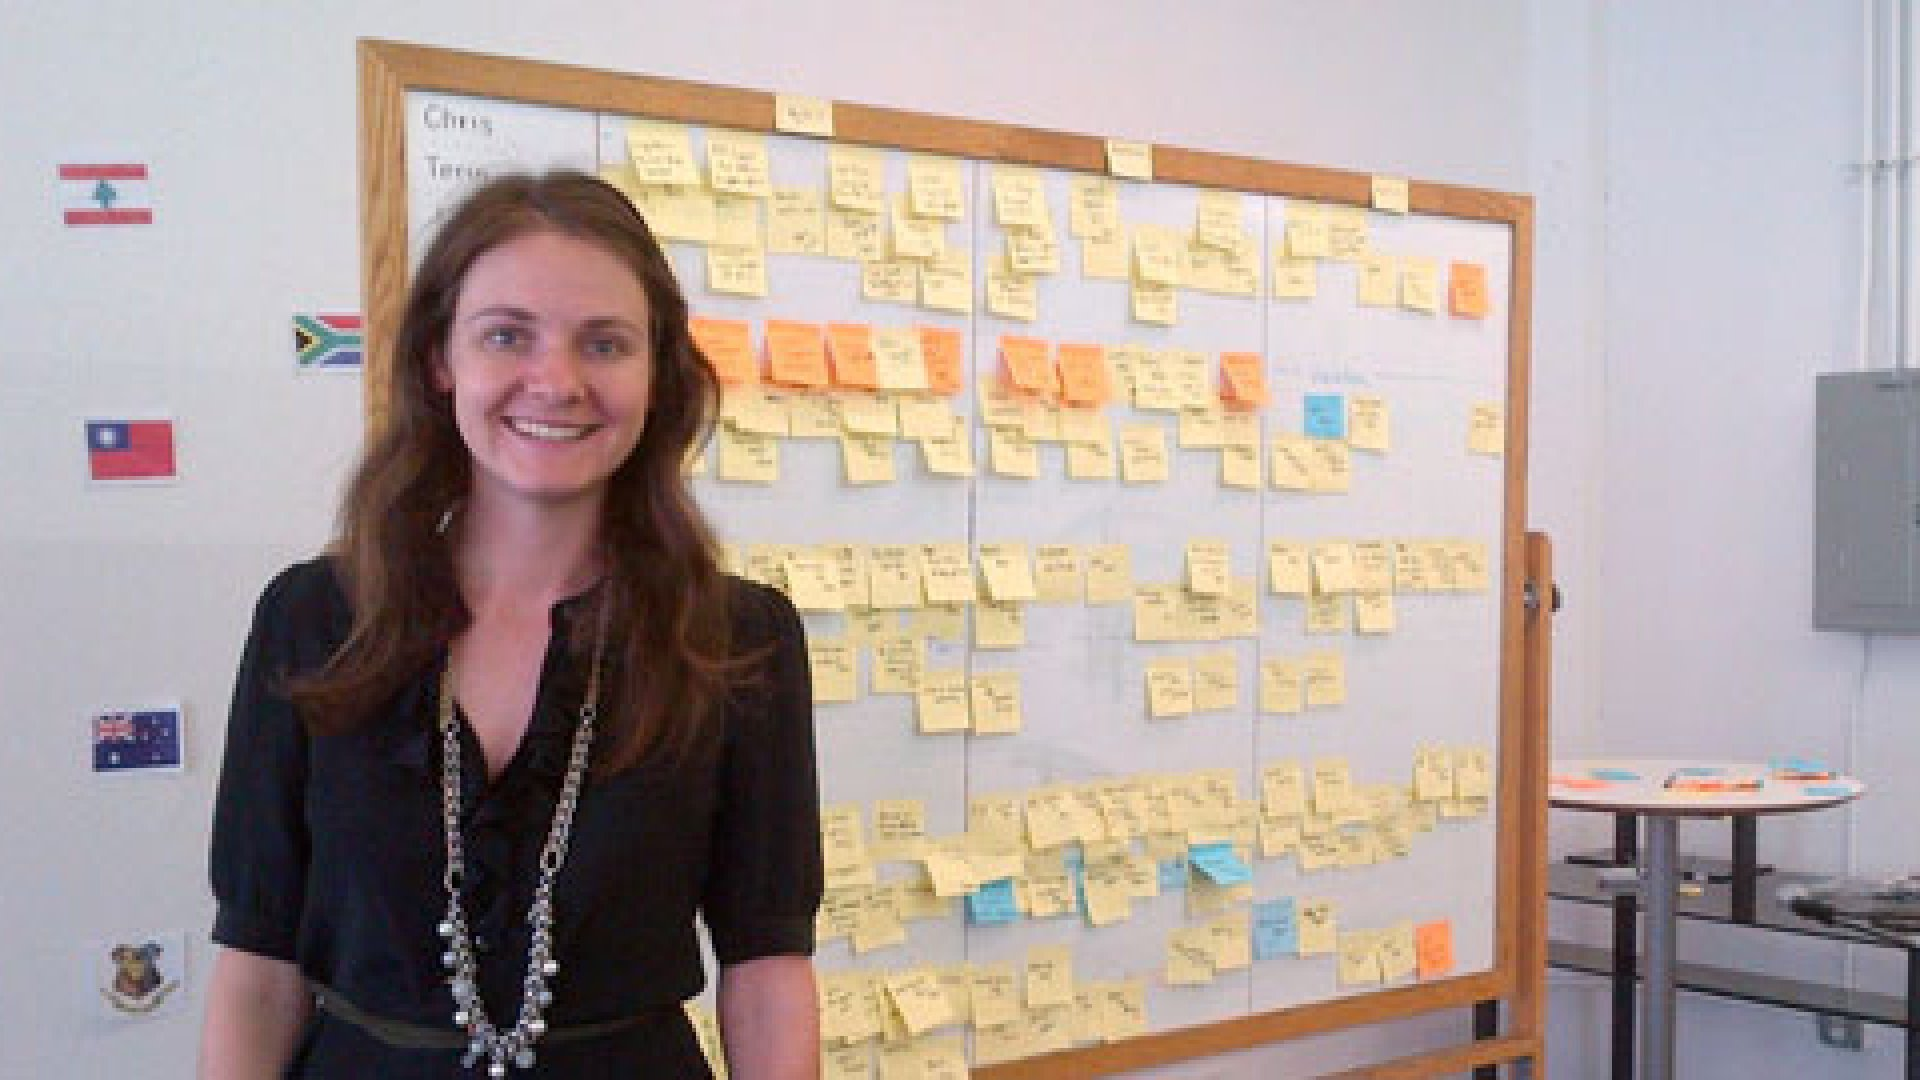 One of Michelle Zatlyn's key strategies at Cloudflare? Post-its--lots of Post-its.